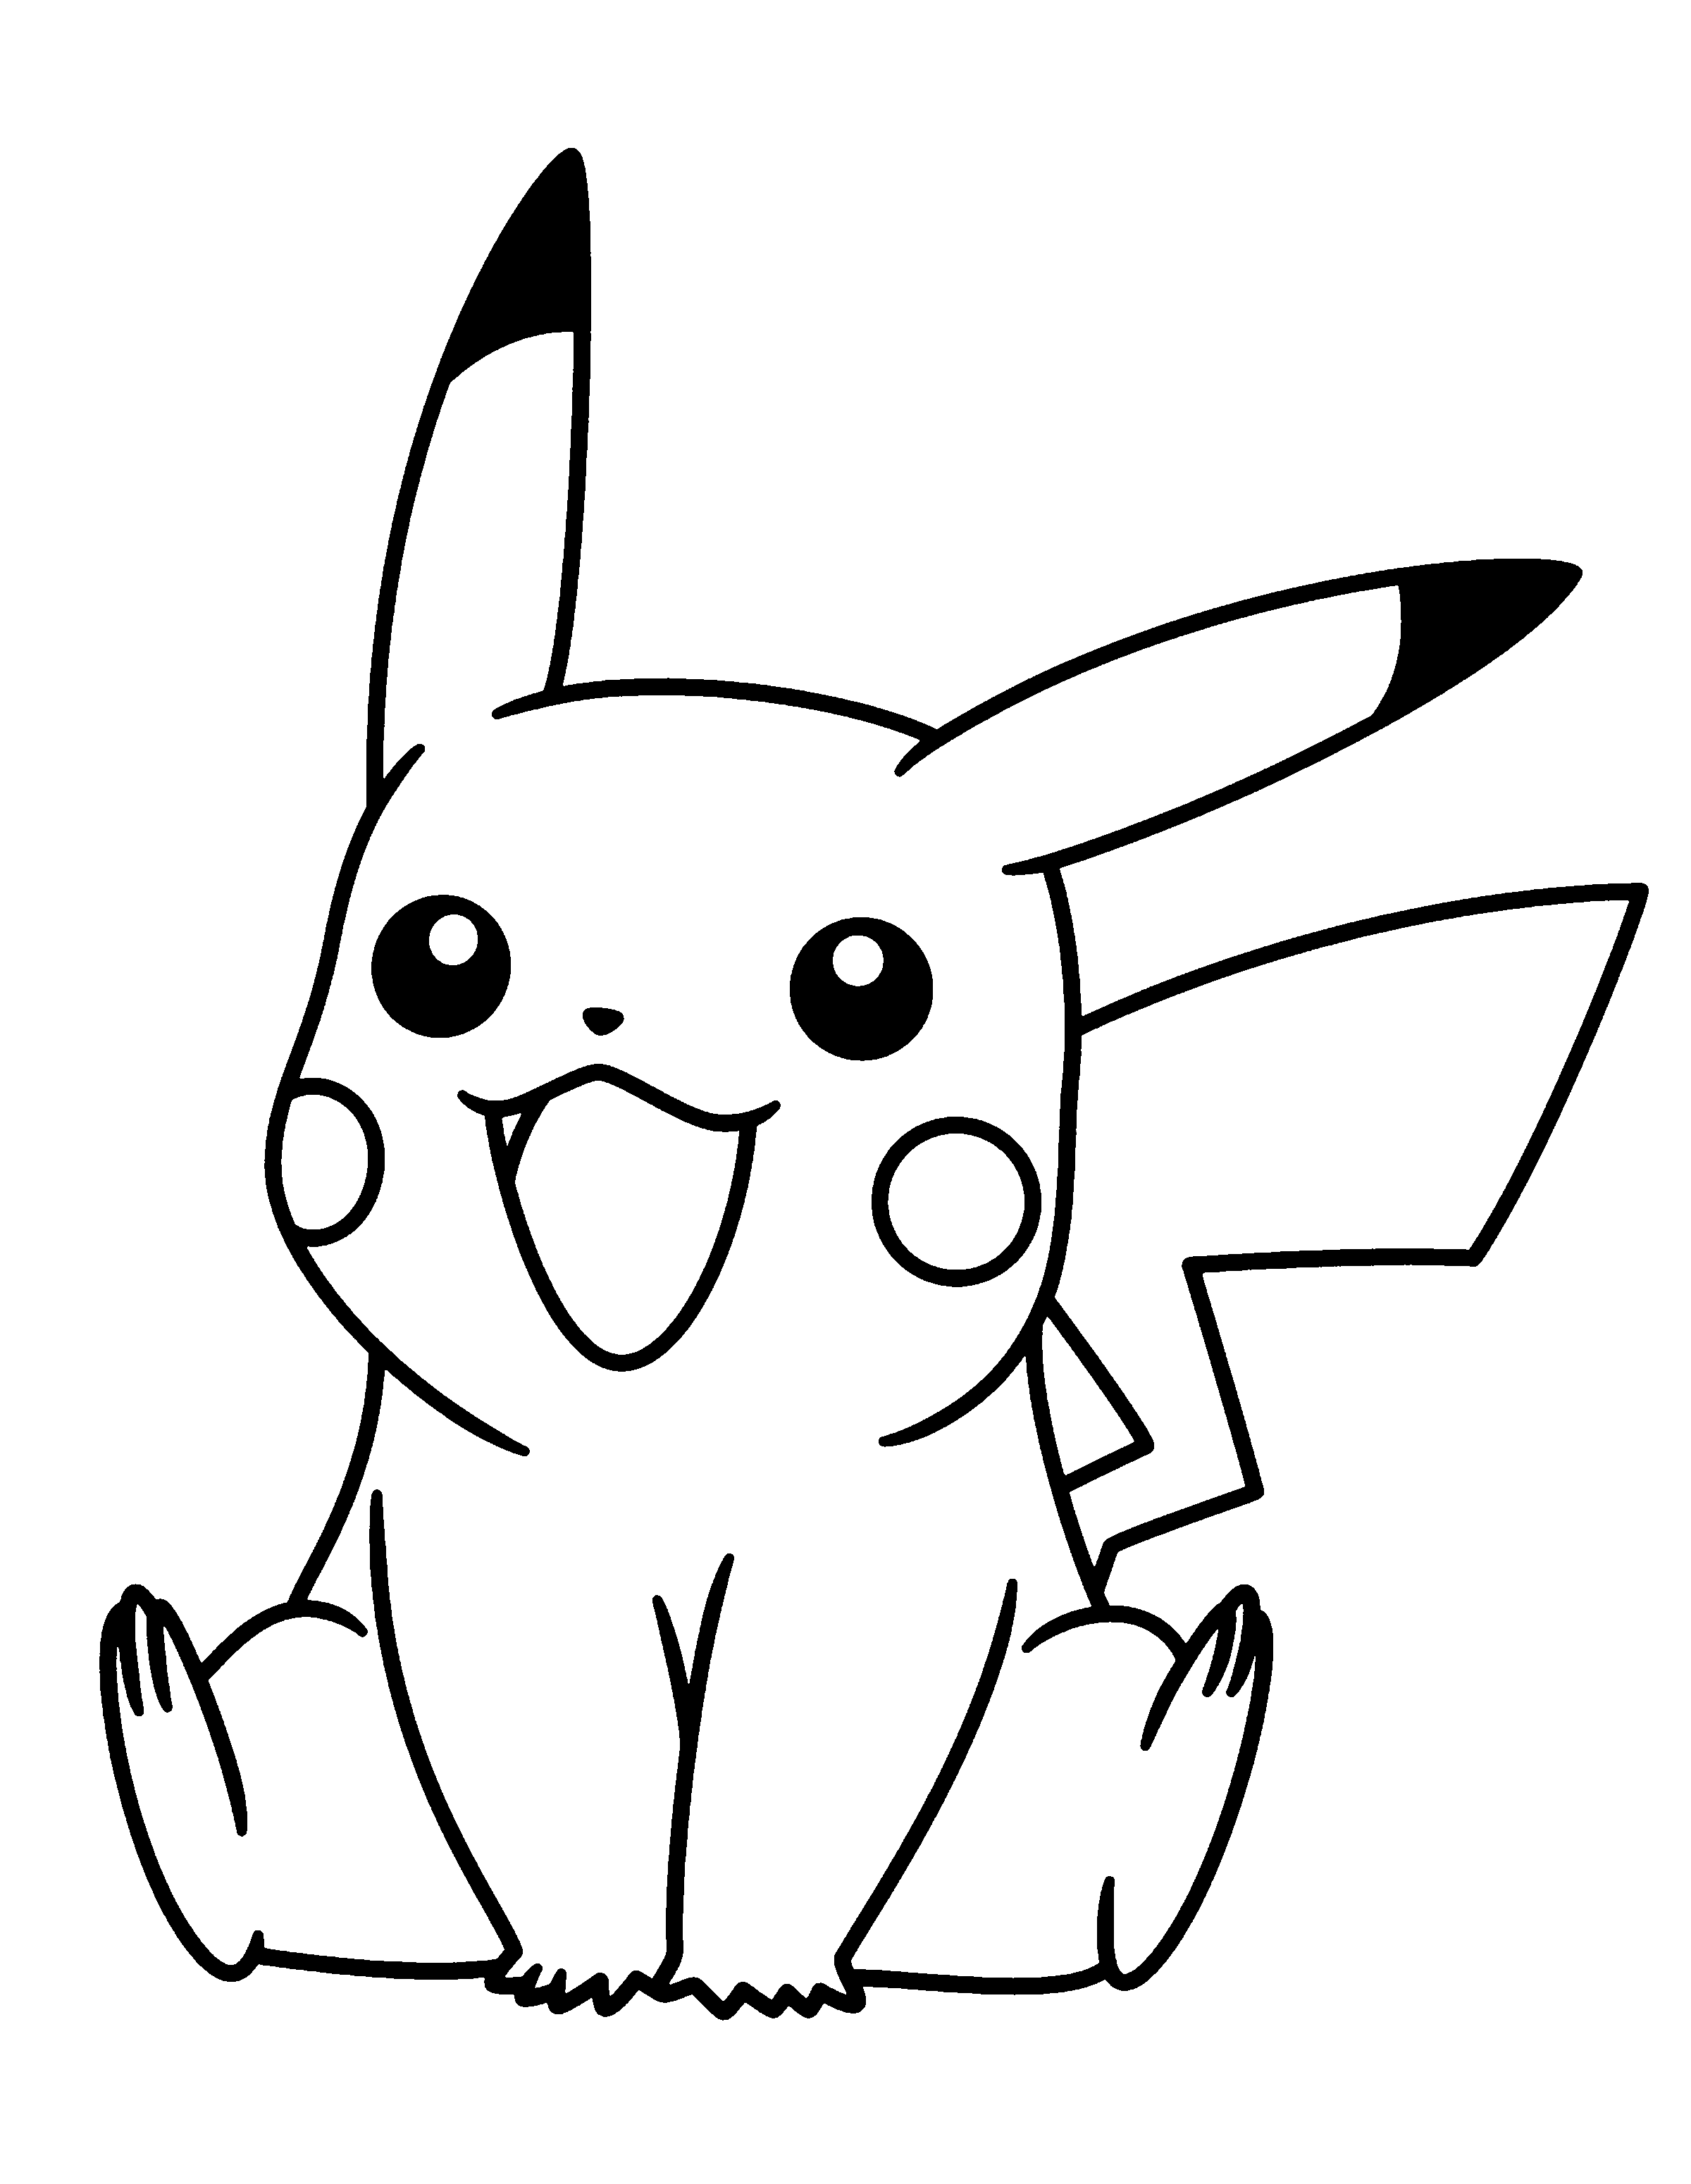 pokemon diamond pearl coloring pages coloringpages1001